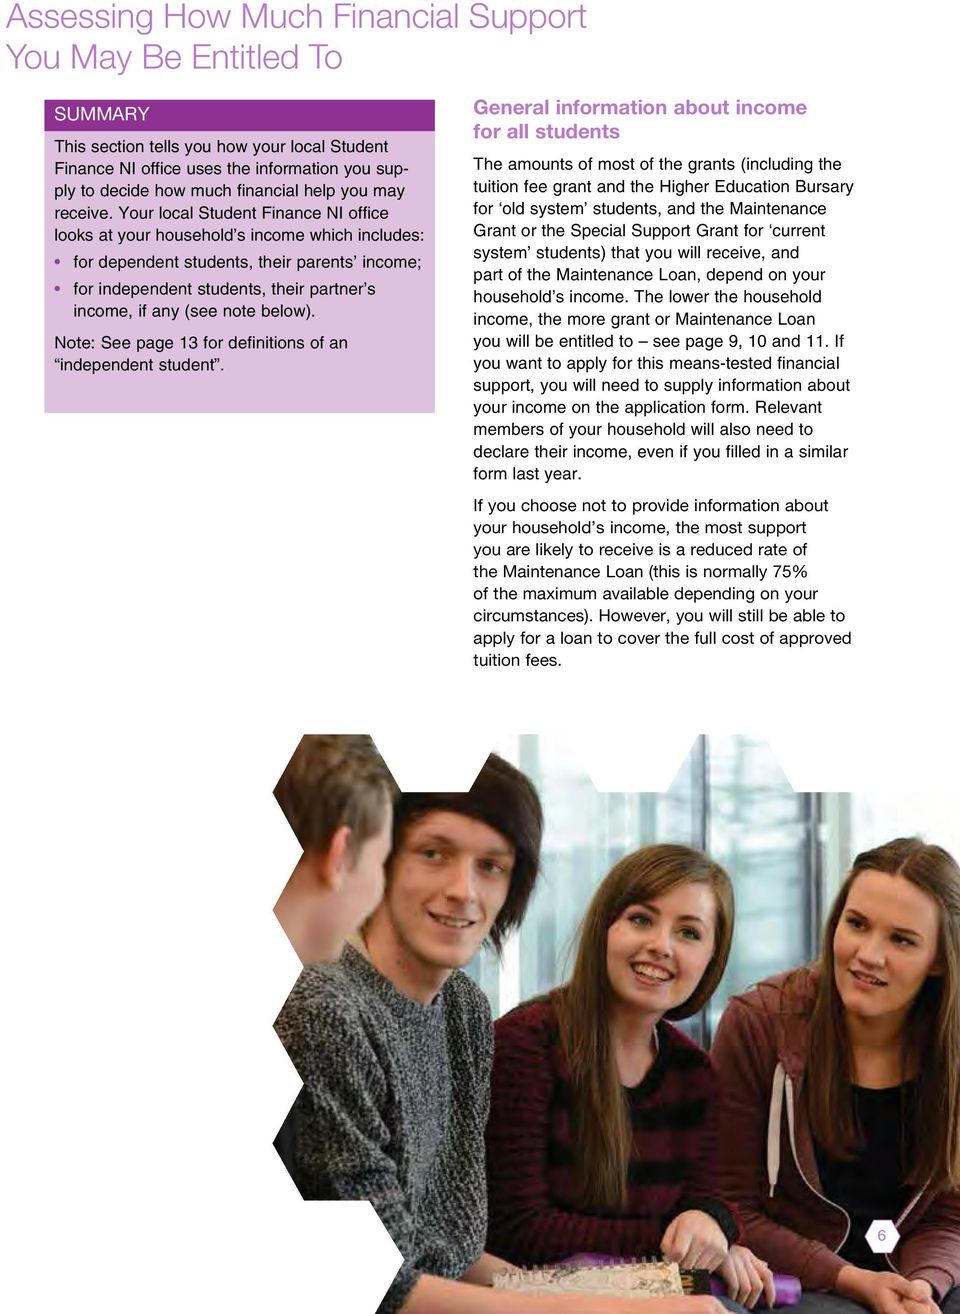 Your local Student Finance NI office looks at your household s income which includes: for dependent students, their parents income; for independent students, their partner s income, if any (see note